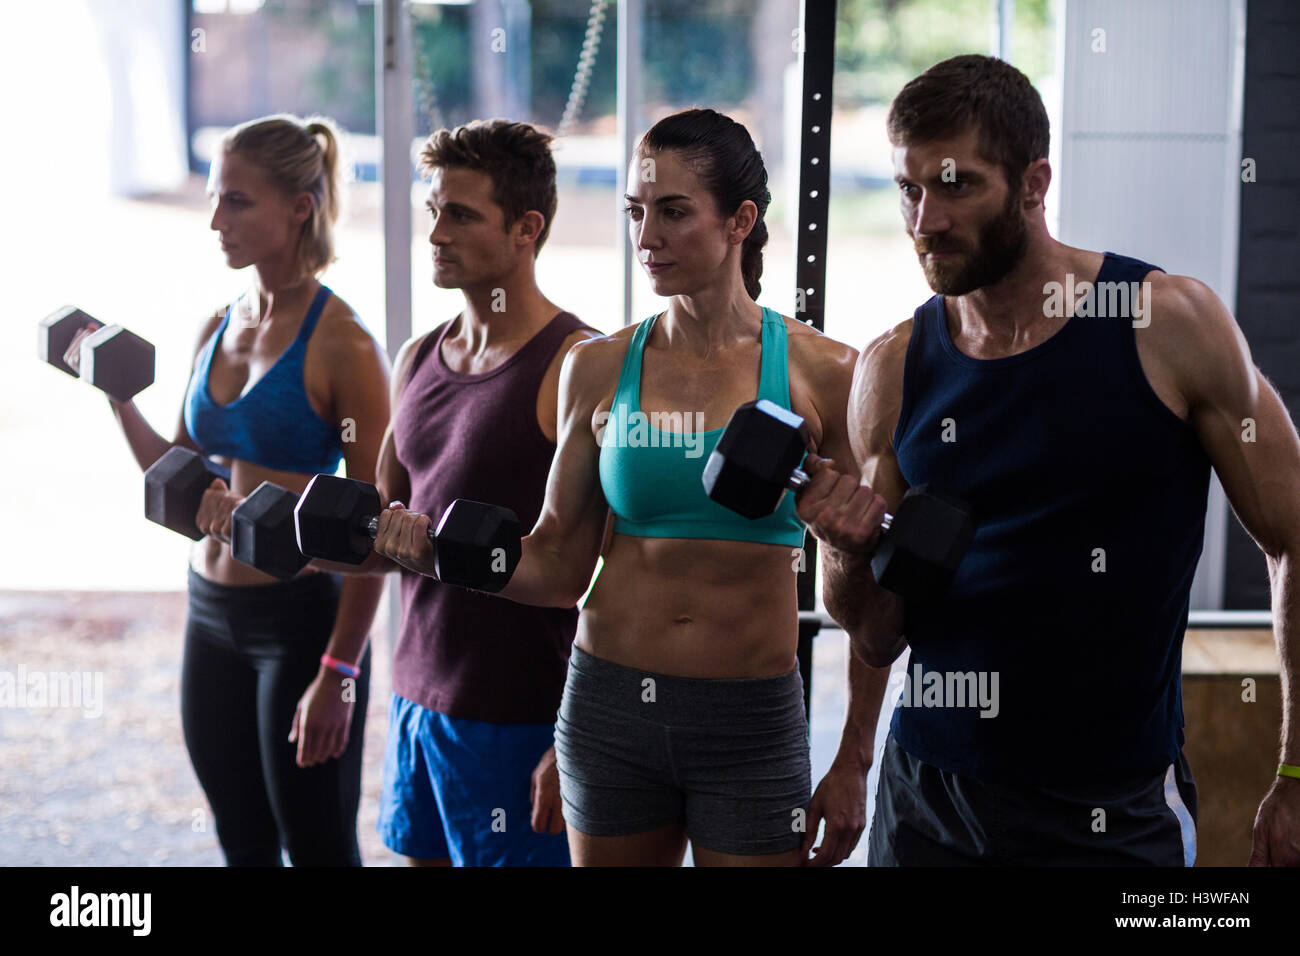 Friends holding dumbbells while working out - Stock Image